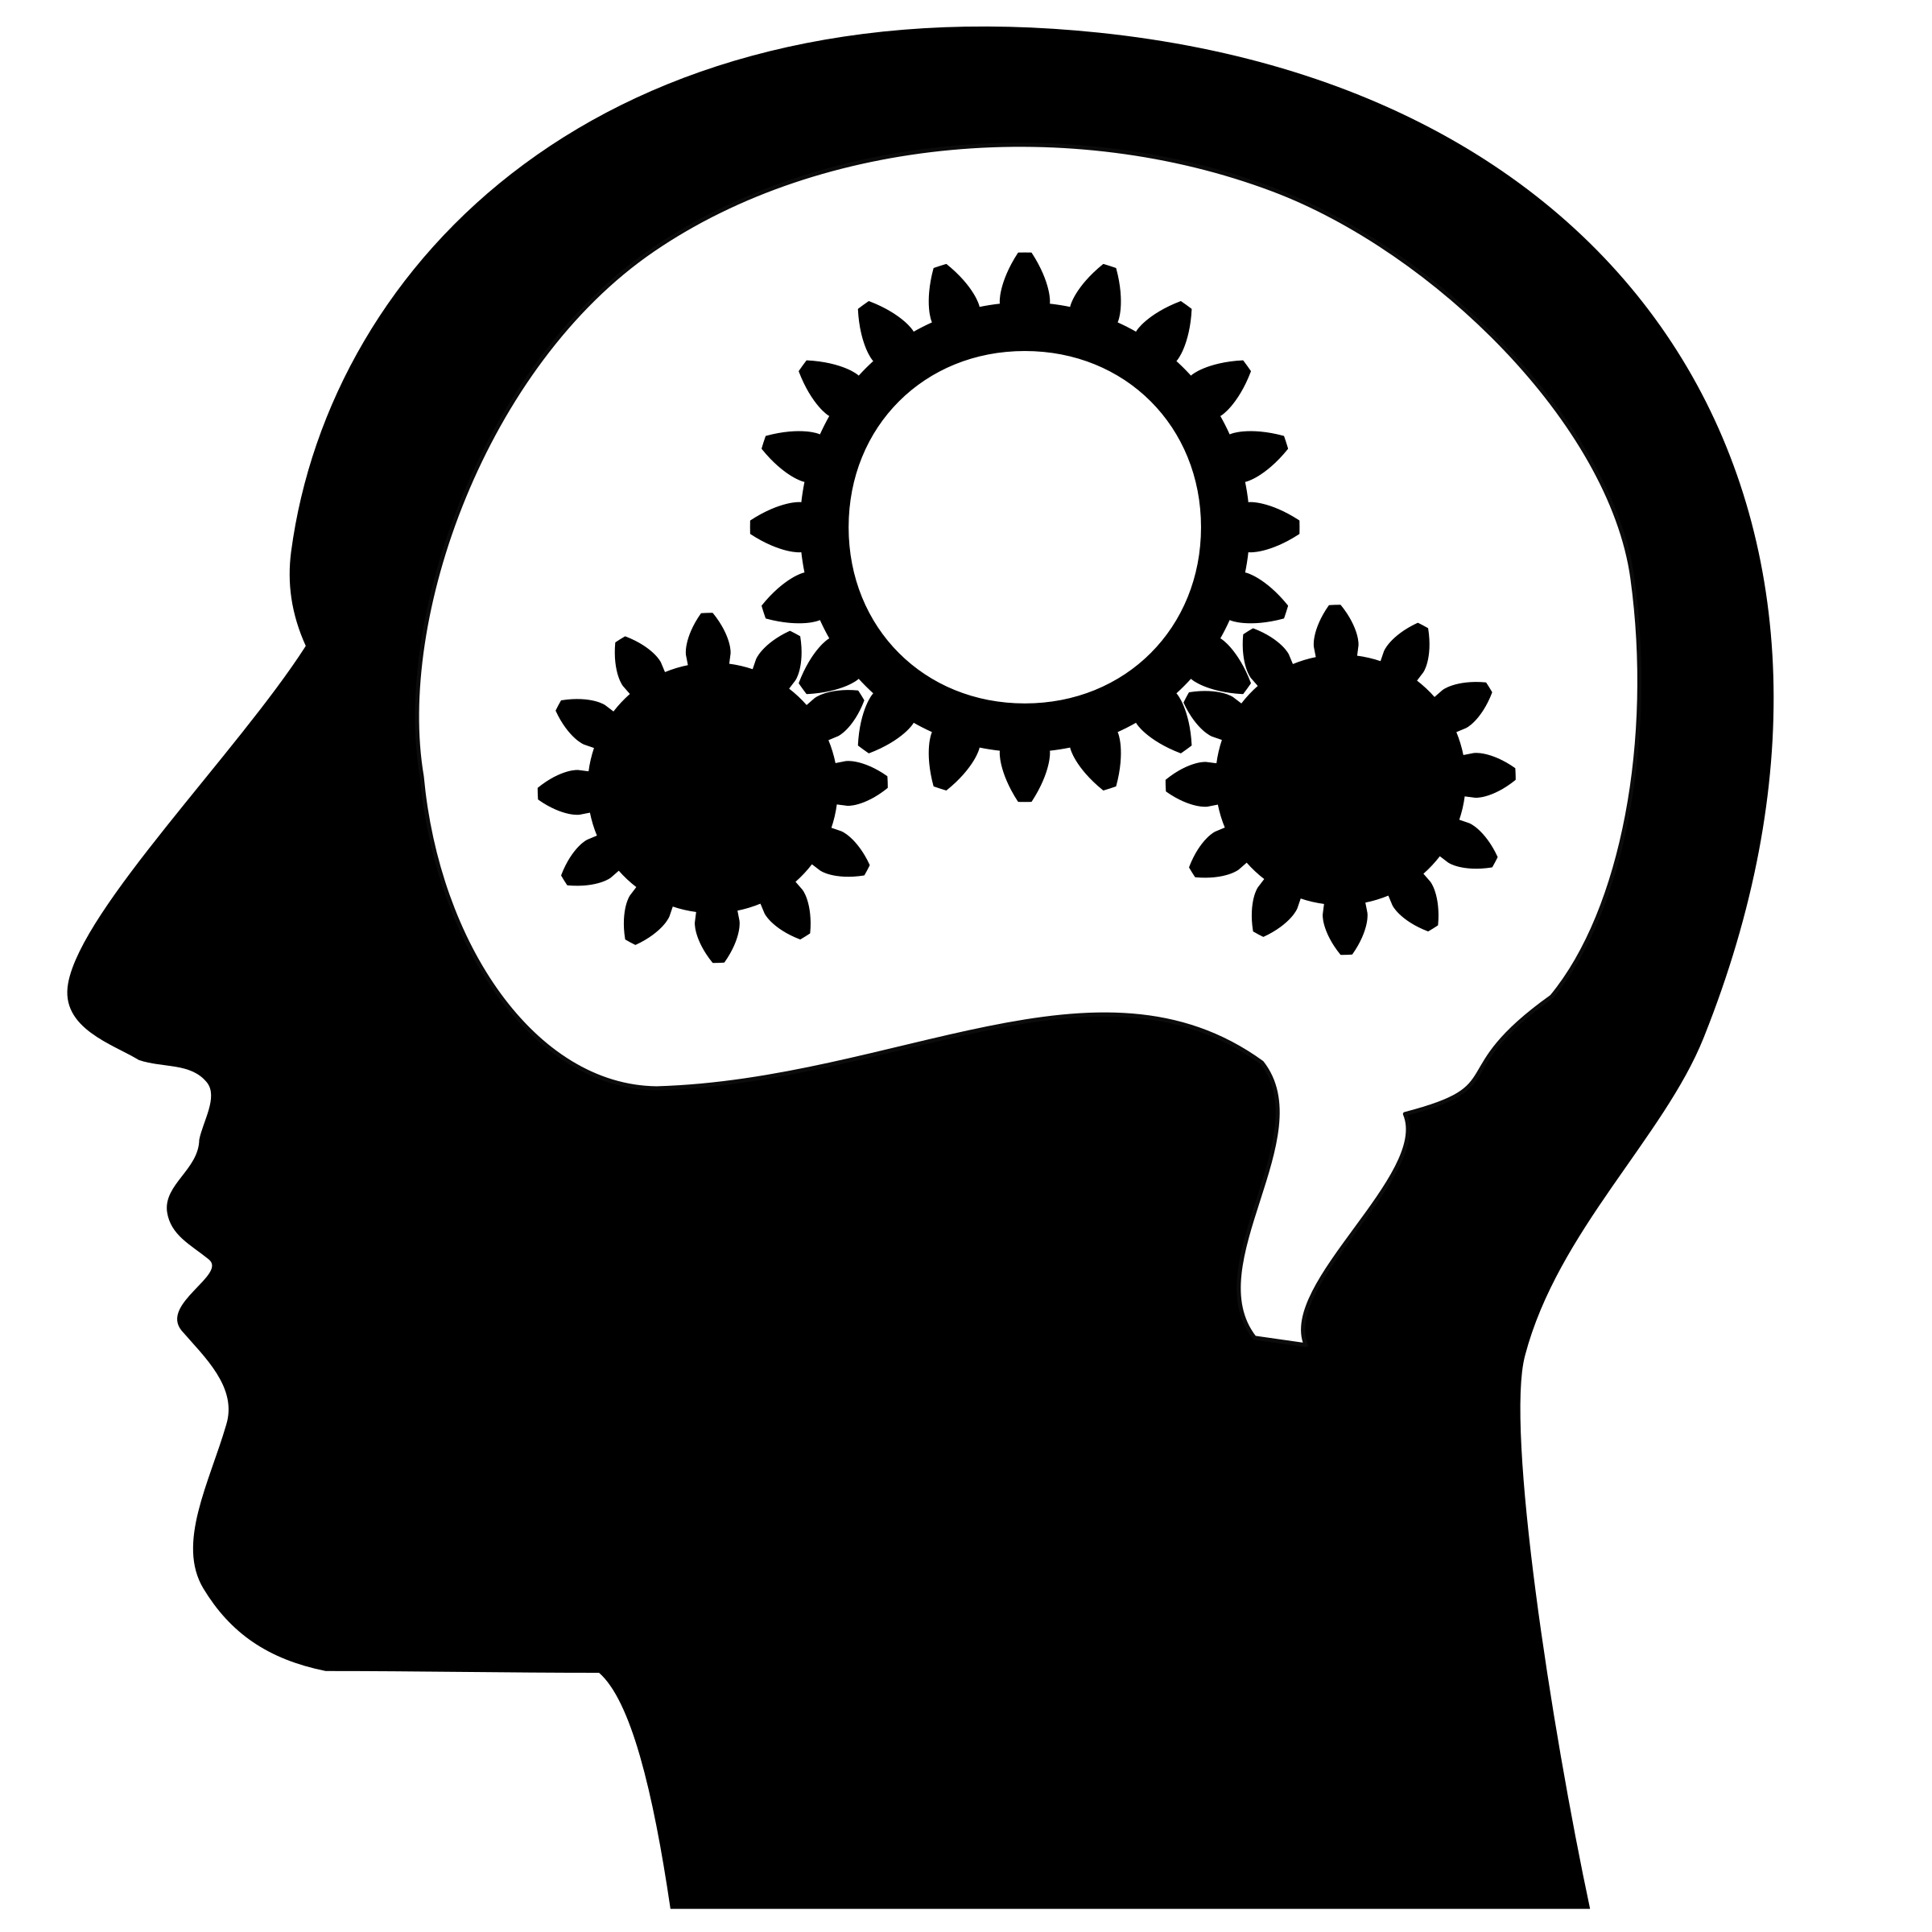 thinking brain machine vector clipart proclaim defend